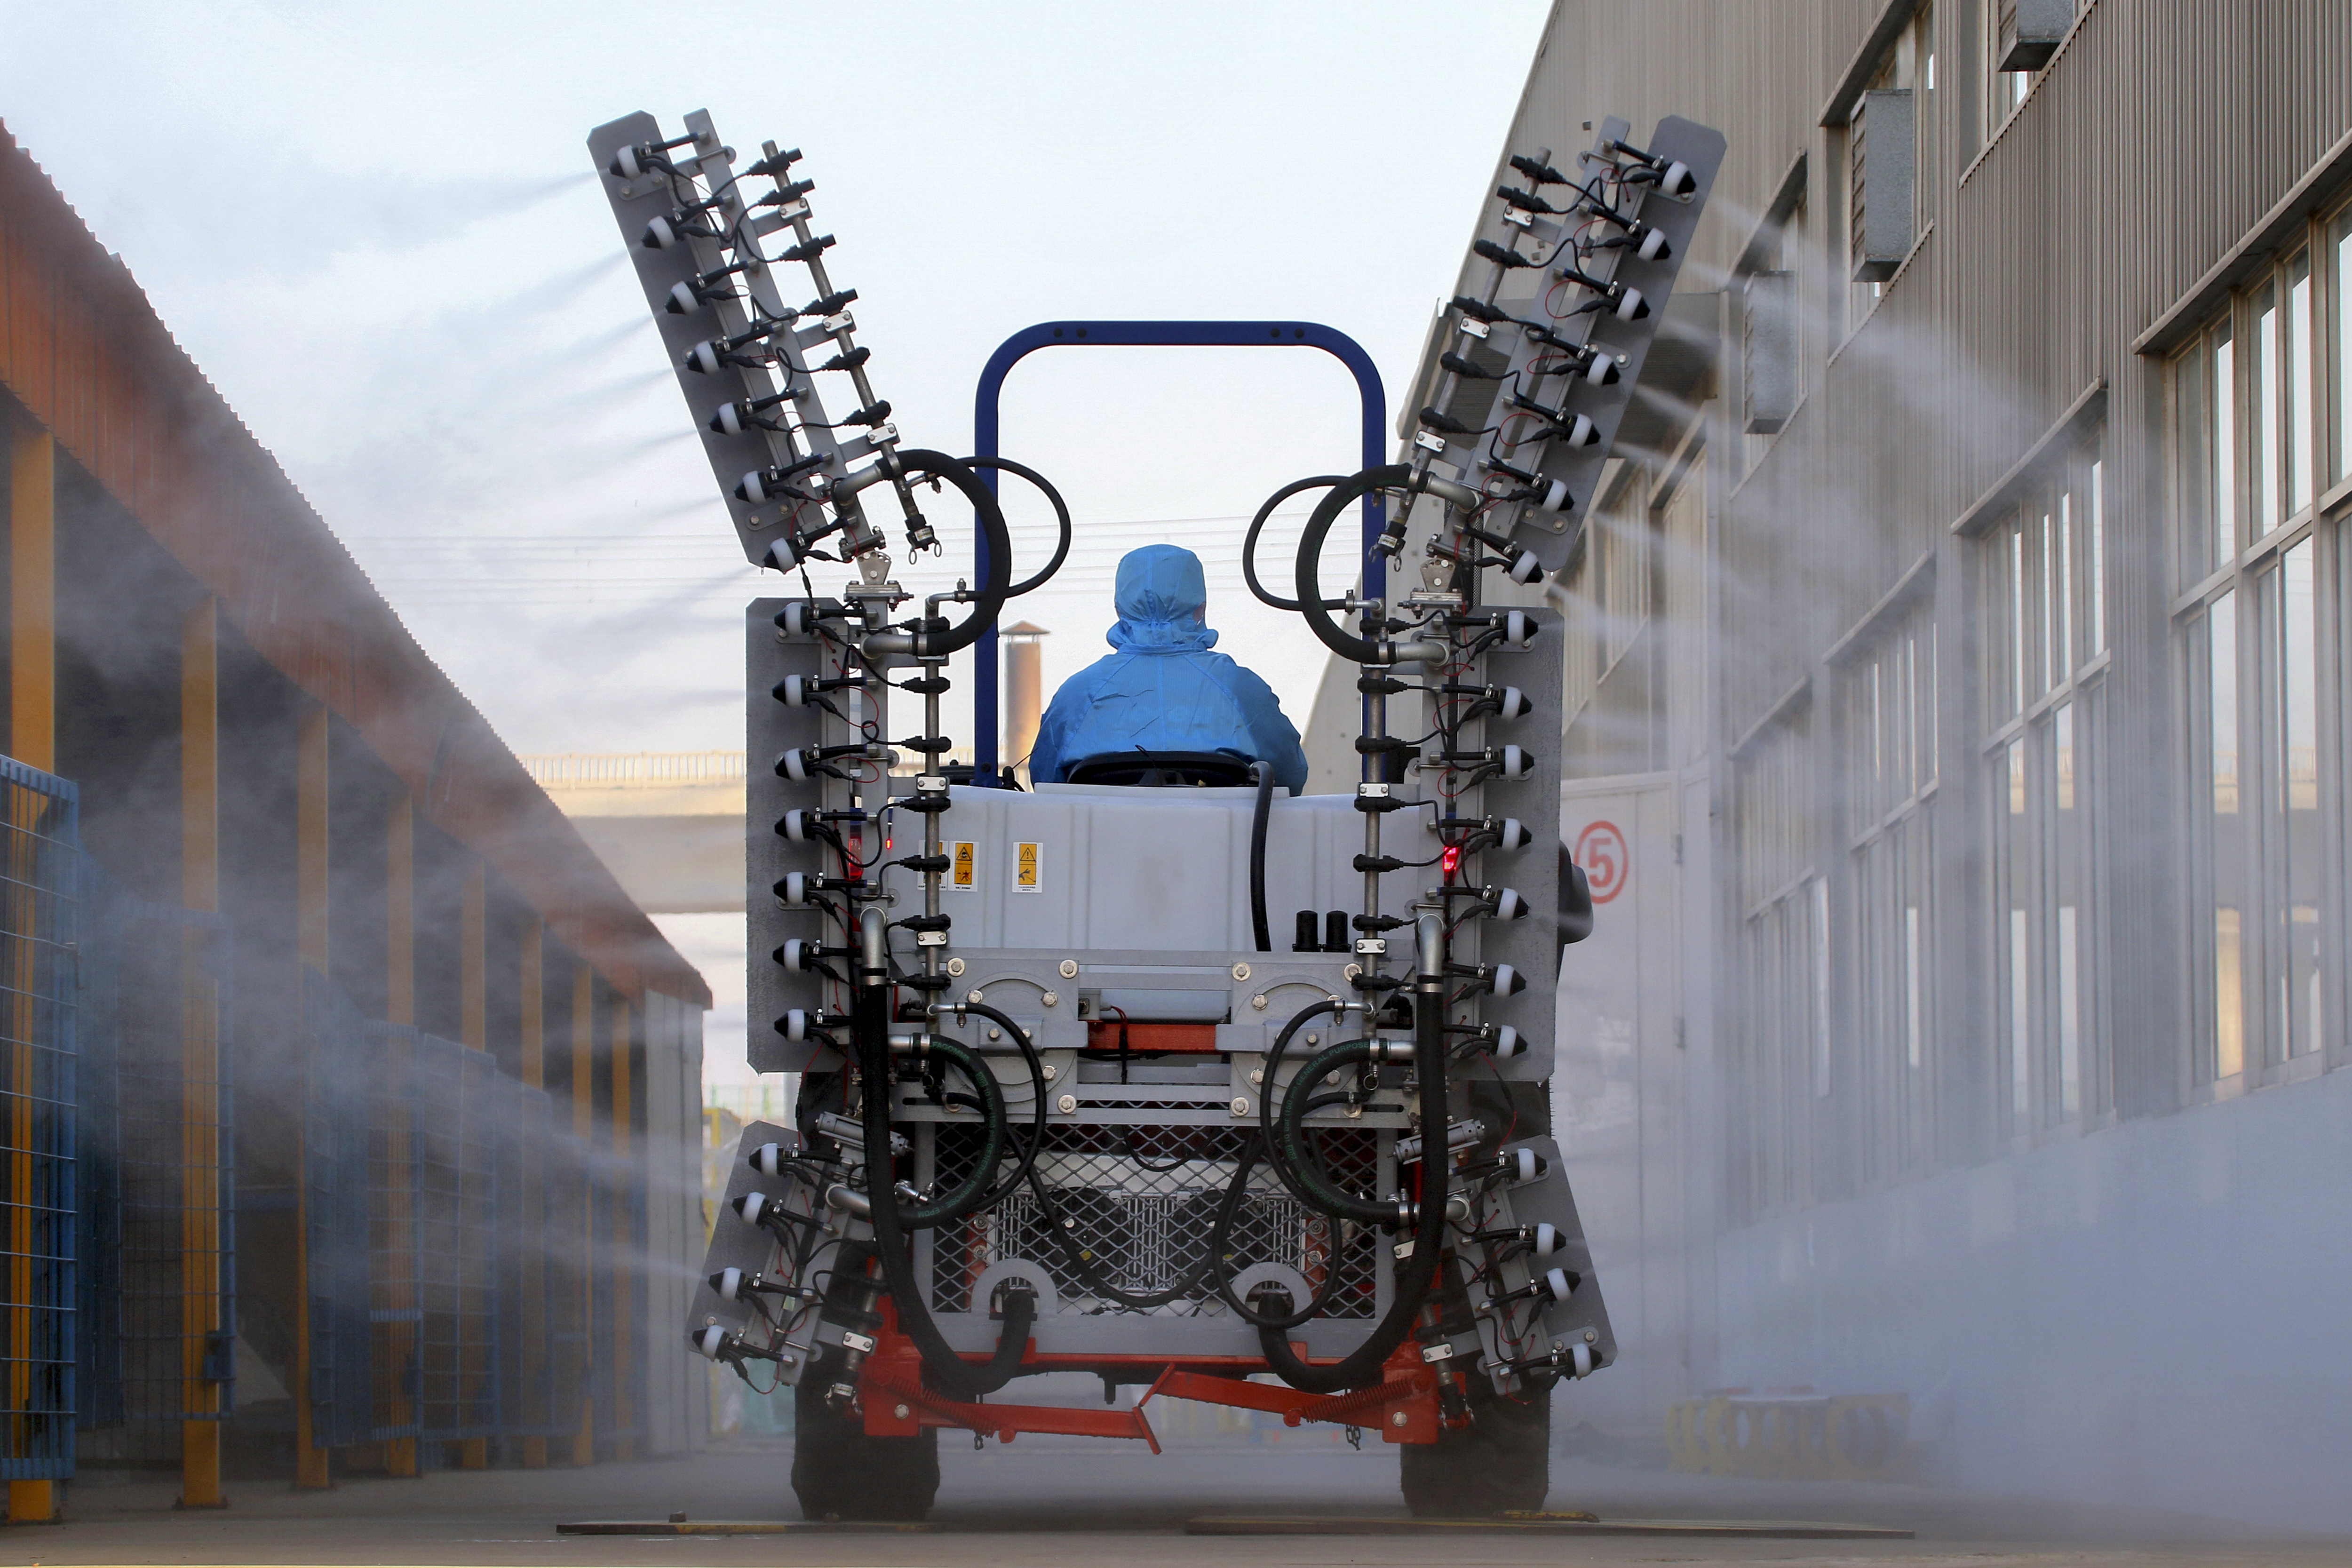 A worker in a tractor operates electrostatic spray to disinfect a workplace following the coronavirus outbreak, in Yantai city in east China's Shandong province, on Sunday.